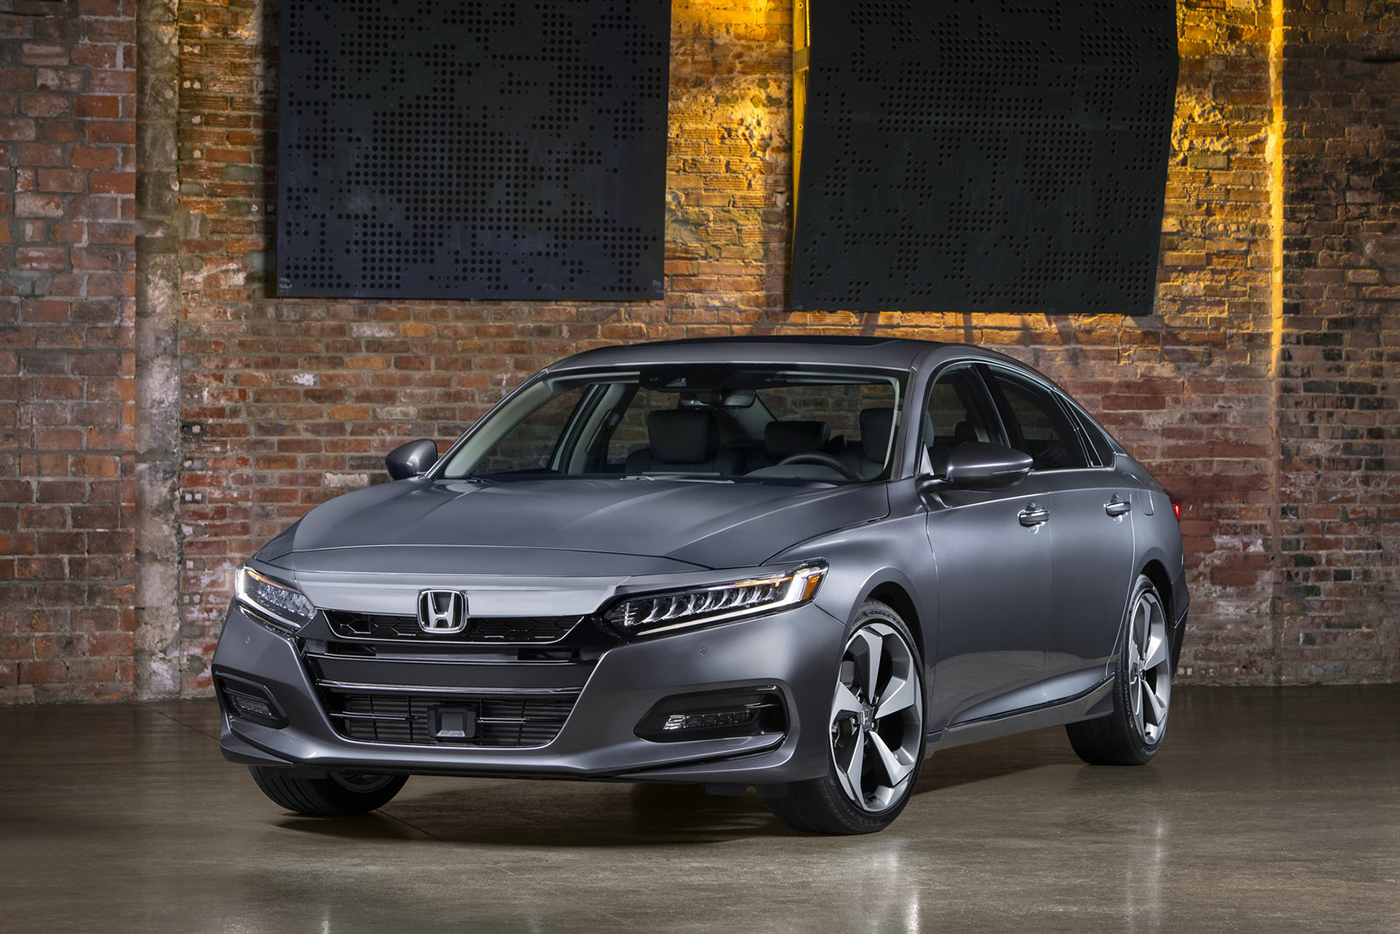 honda-accord-2018-5.jpg